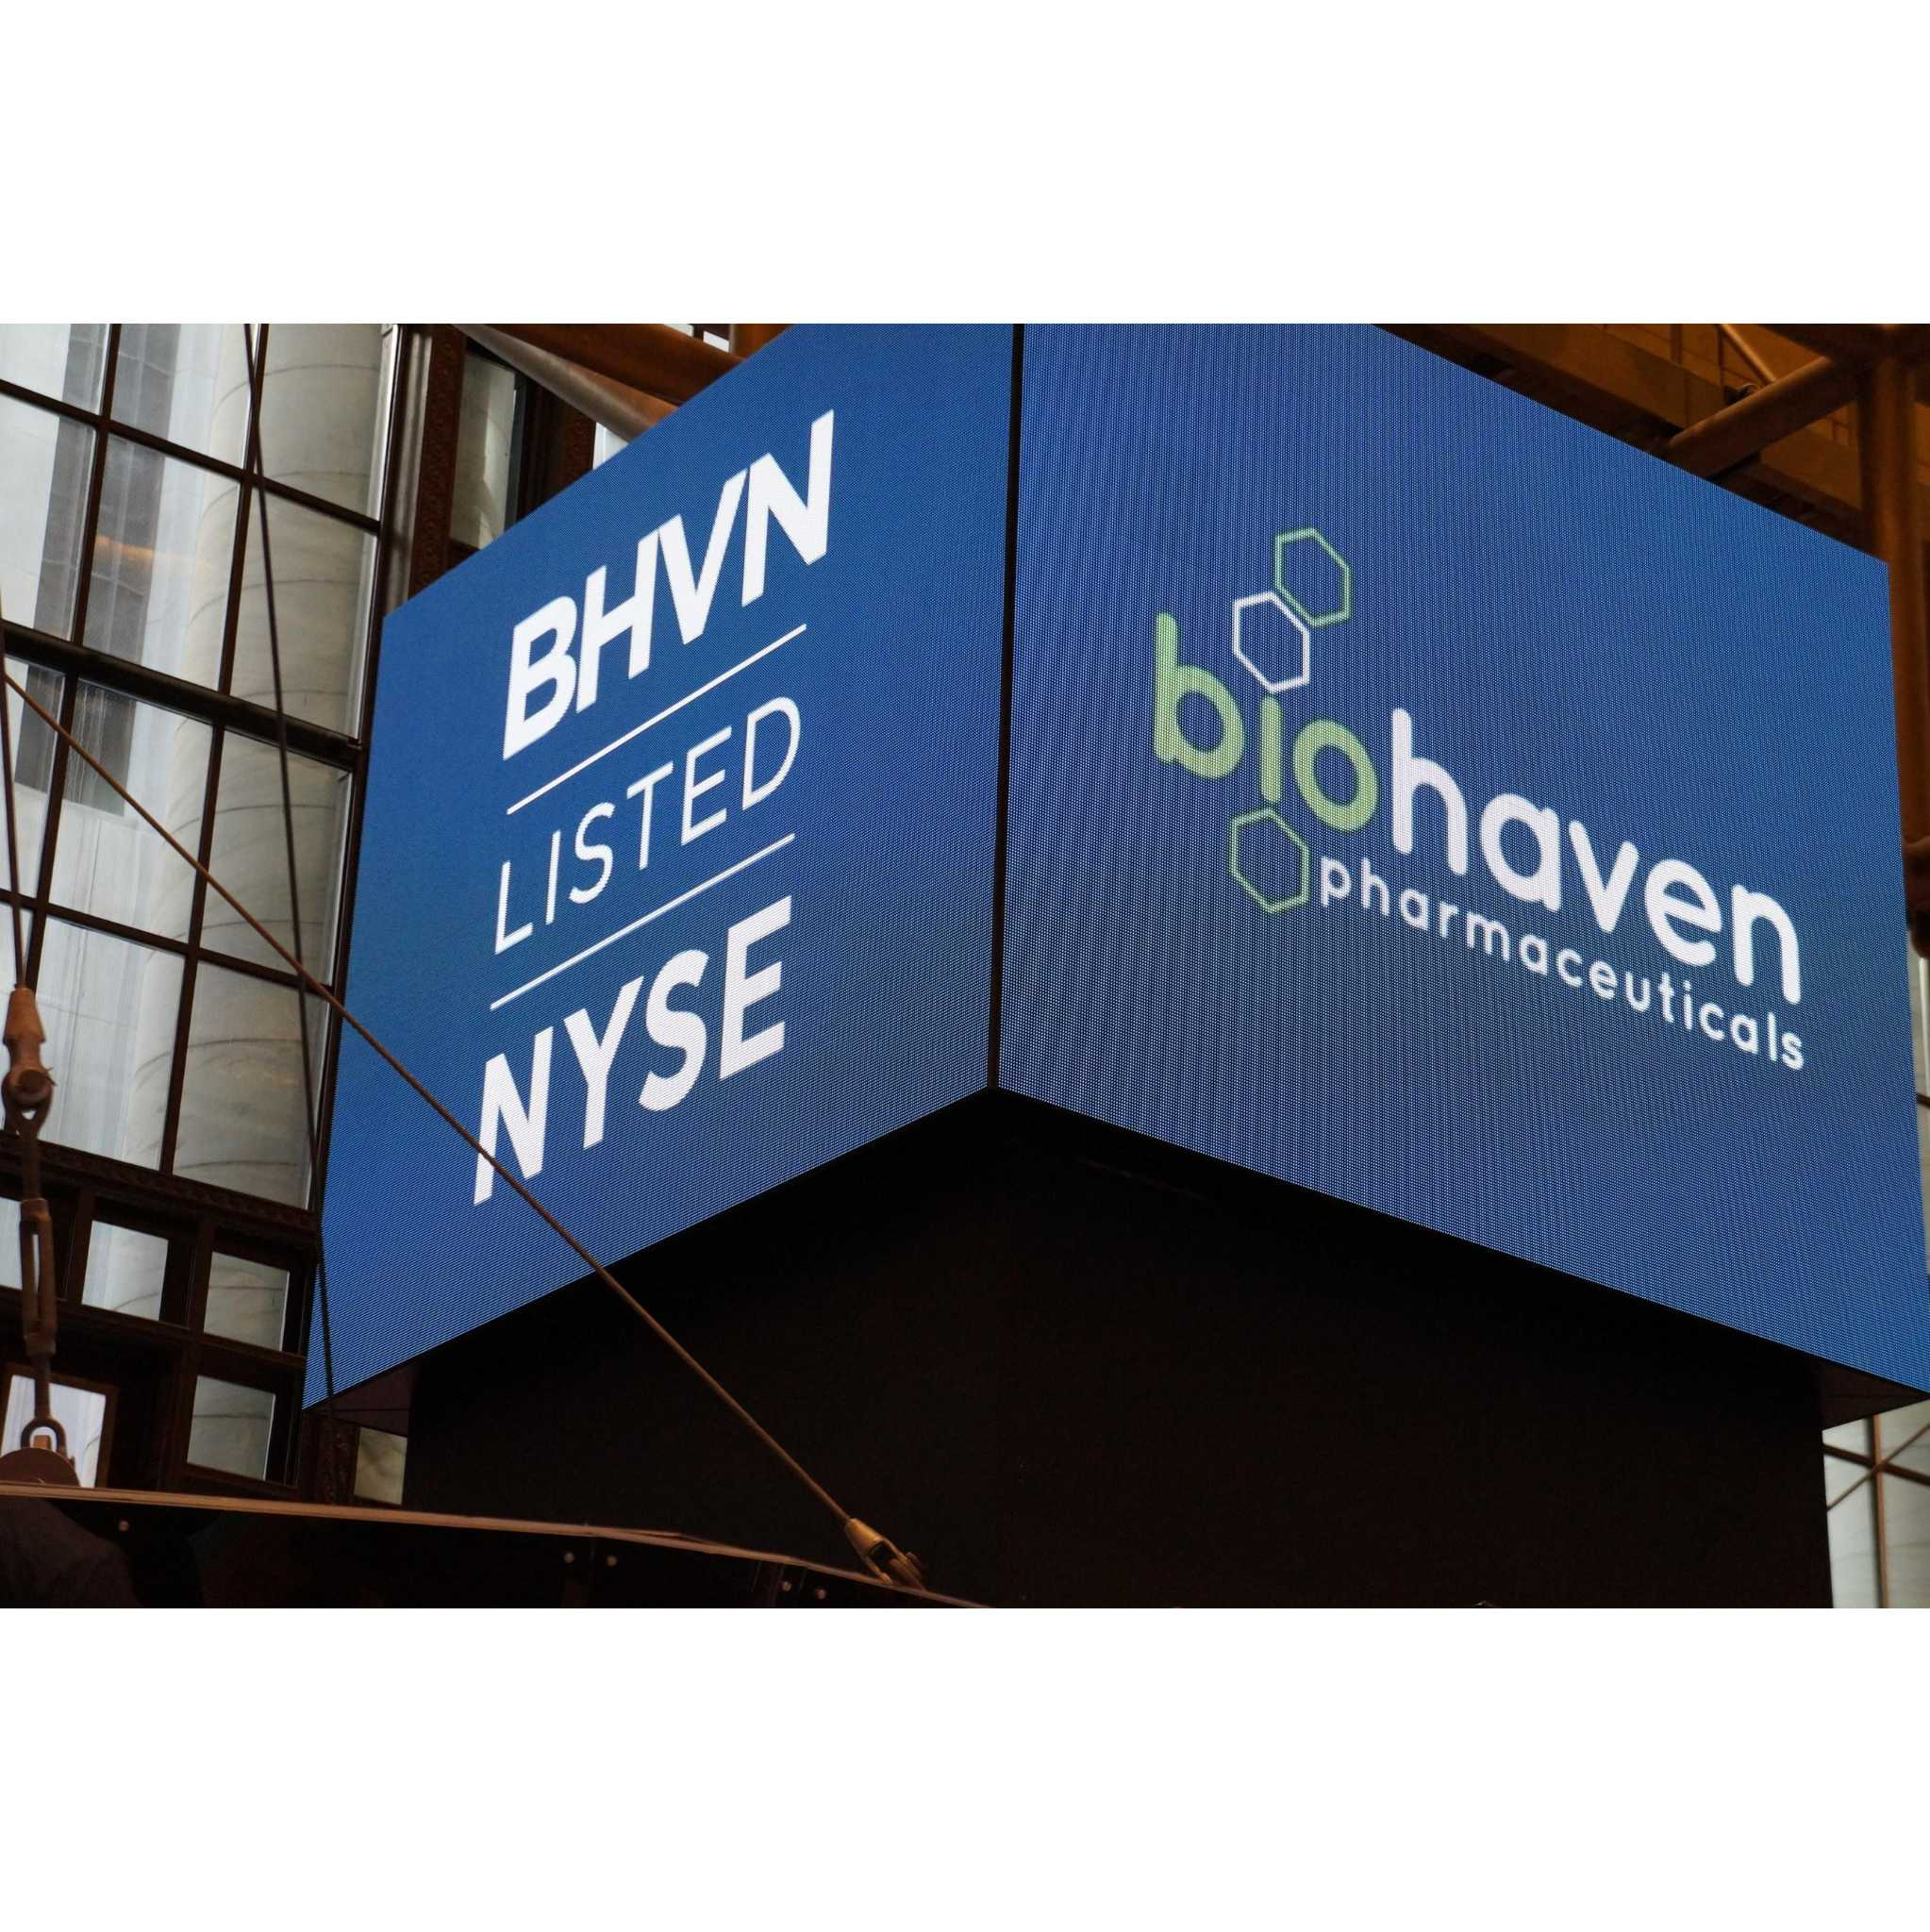 Biohaven's Chinese subsidiary raises $60M from large investors